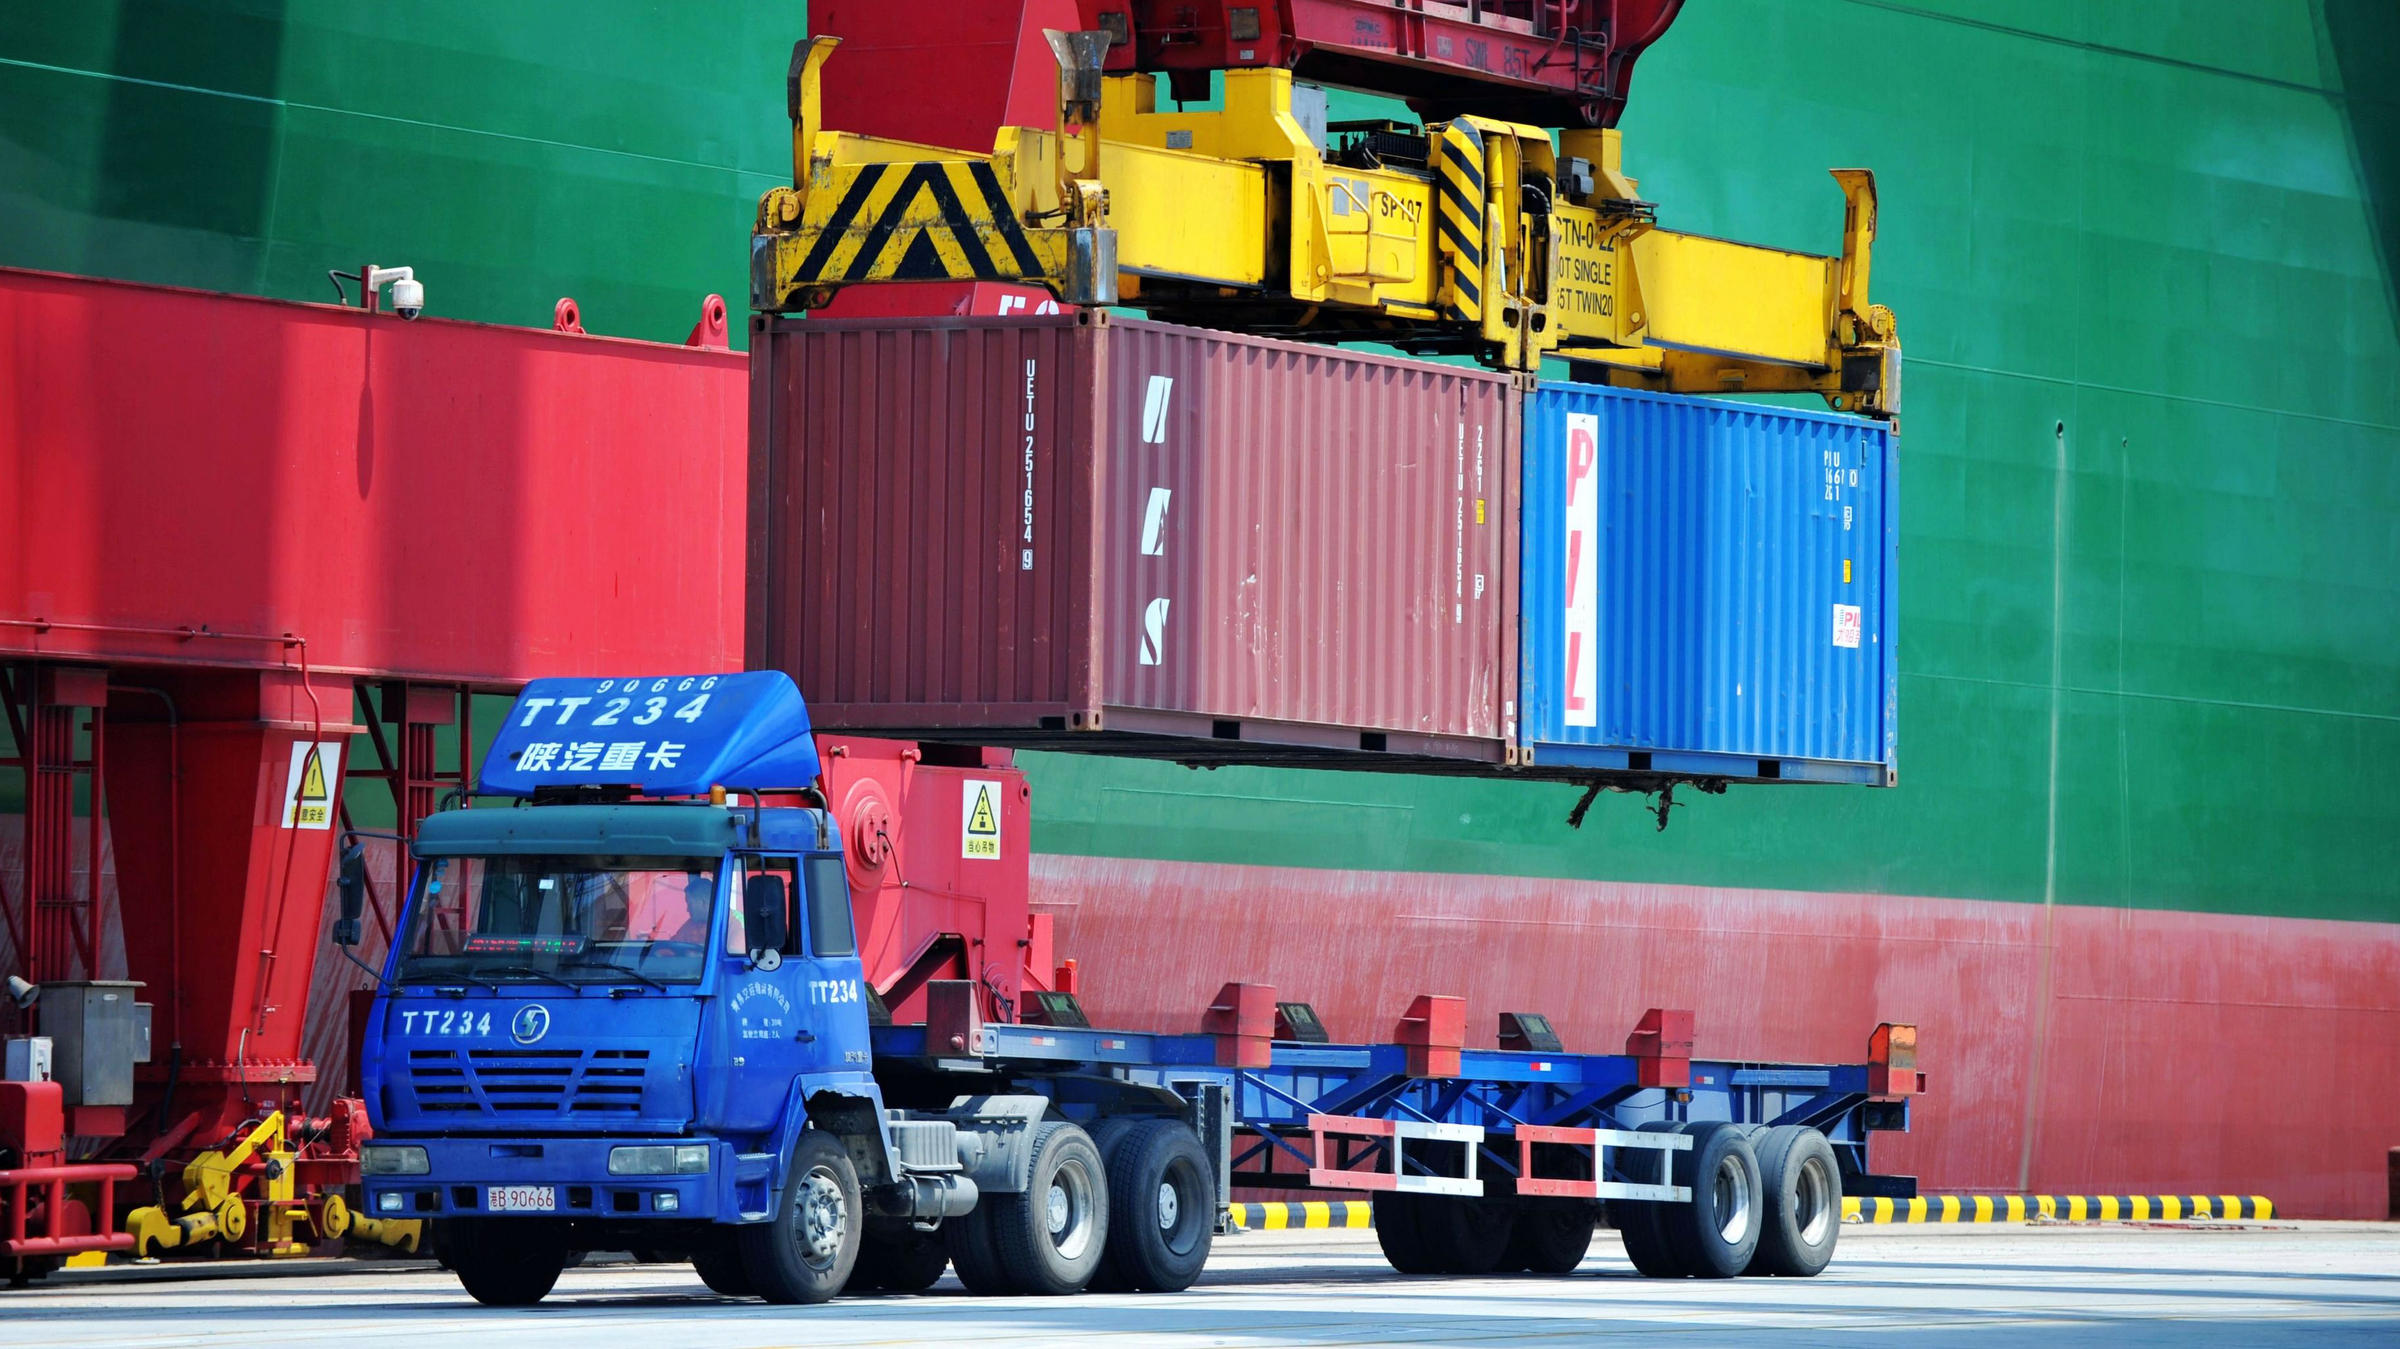 Containers are transferred at a port in Qingdao in China's eastern Shandong province on July 6. China has announced a plan to impose more tariffs on U.S. goods in response to escalating trade threats from the Trump administration